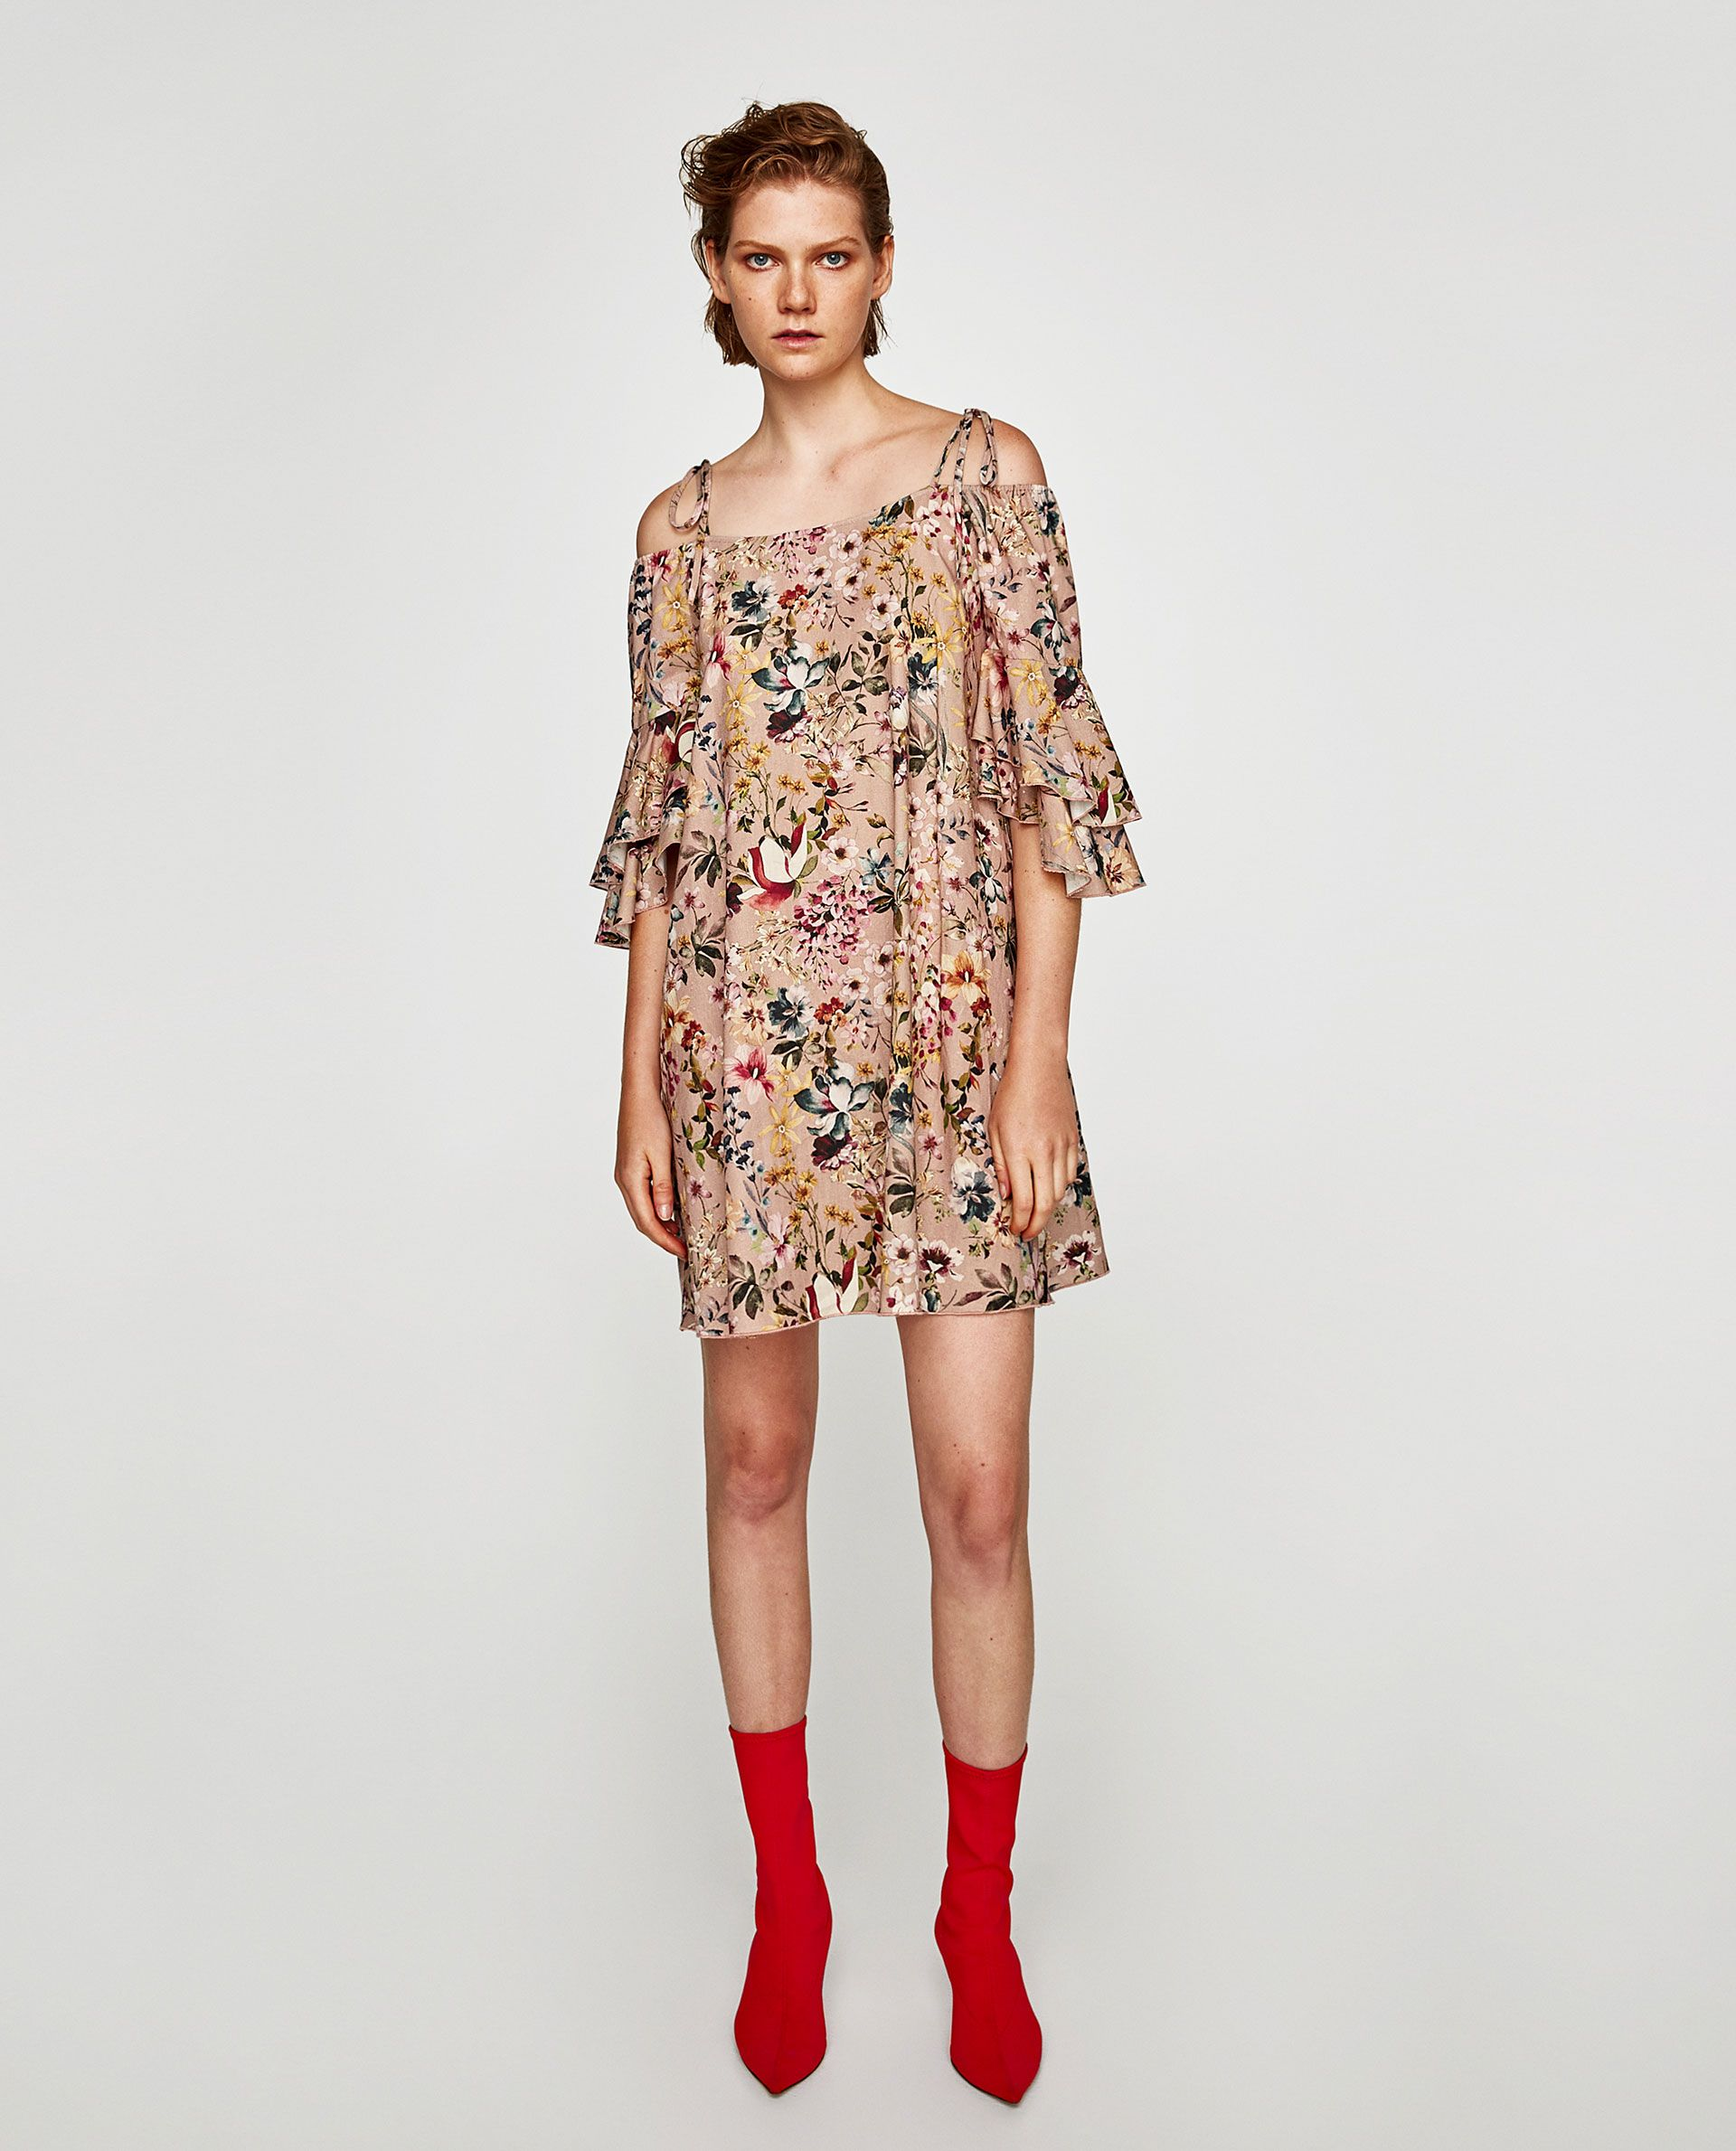 ecff1a07b77 Image 1 of FLORAL PRINT LINEN DRESS from Zara